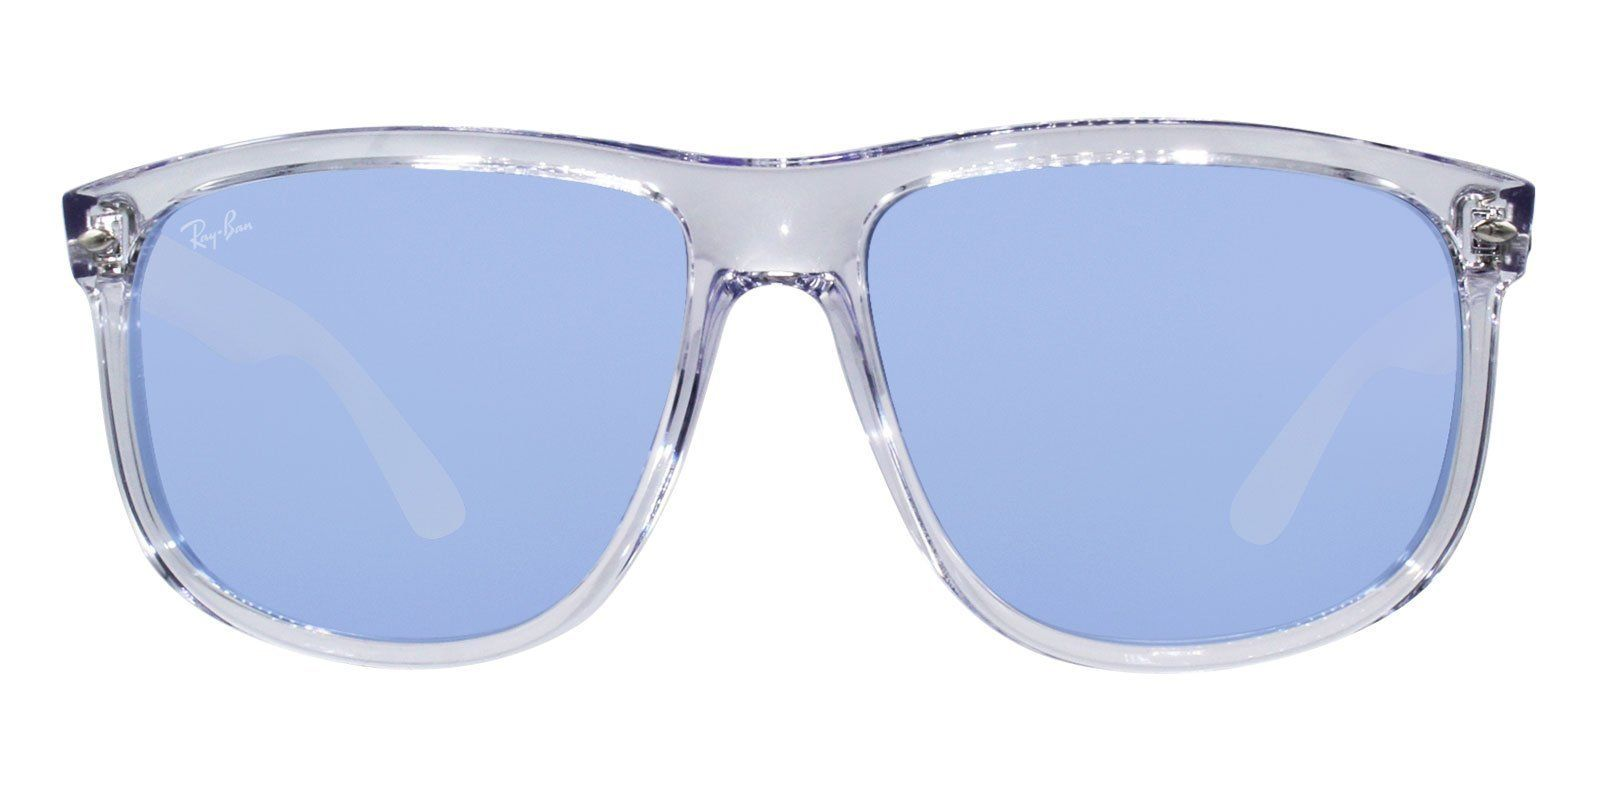 9640e70dac Ray Ban - RB4147 Clear - Blue sunglasses in 2018